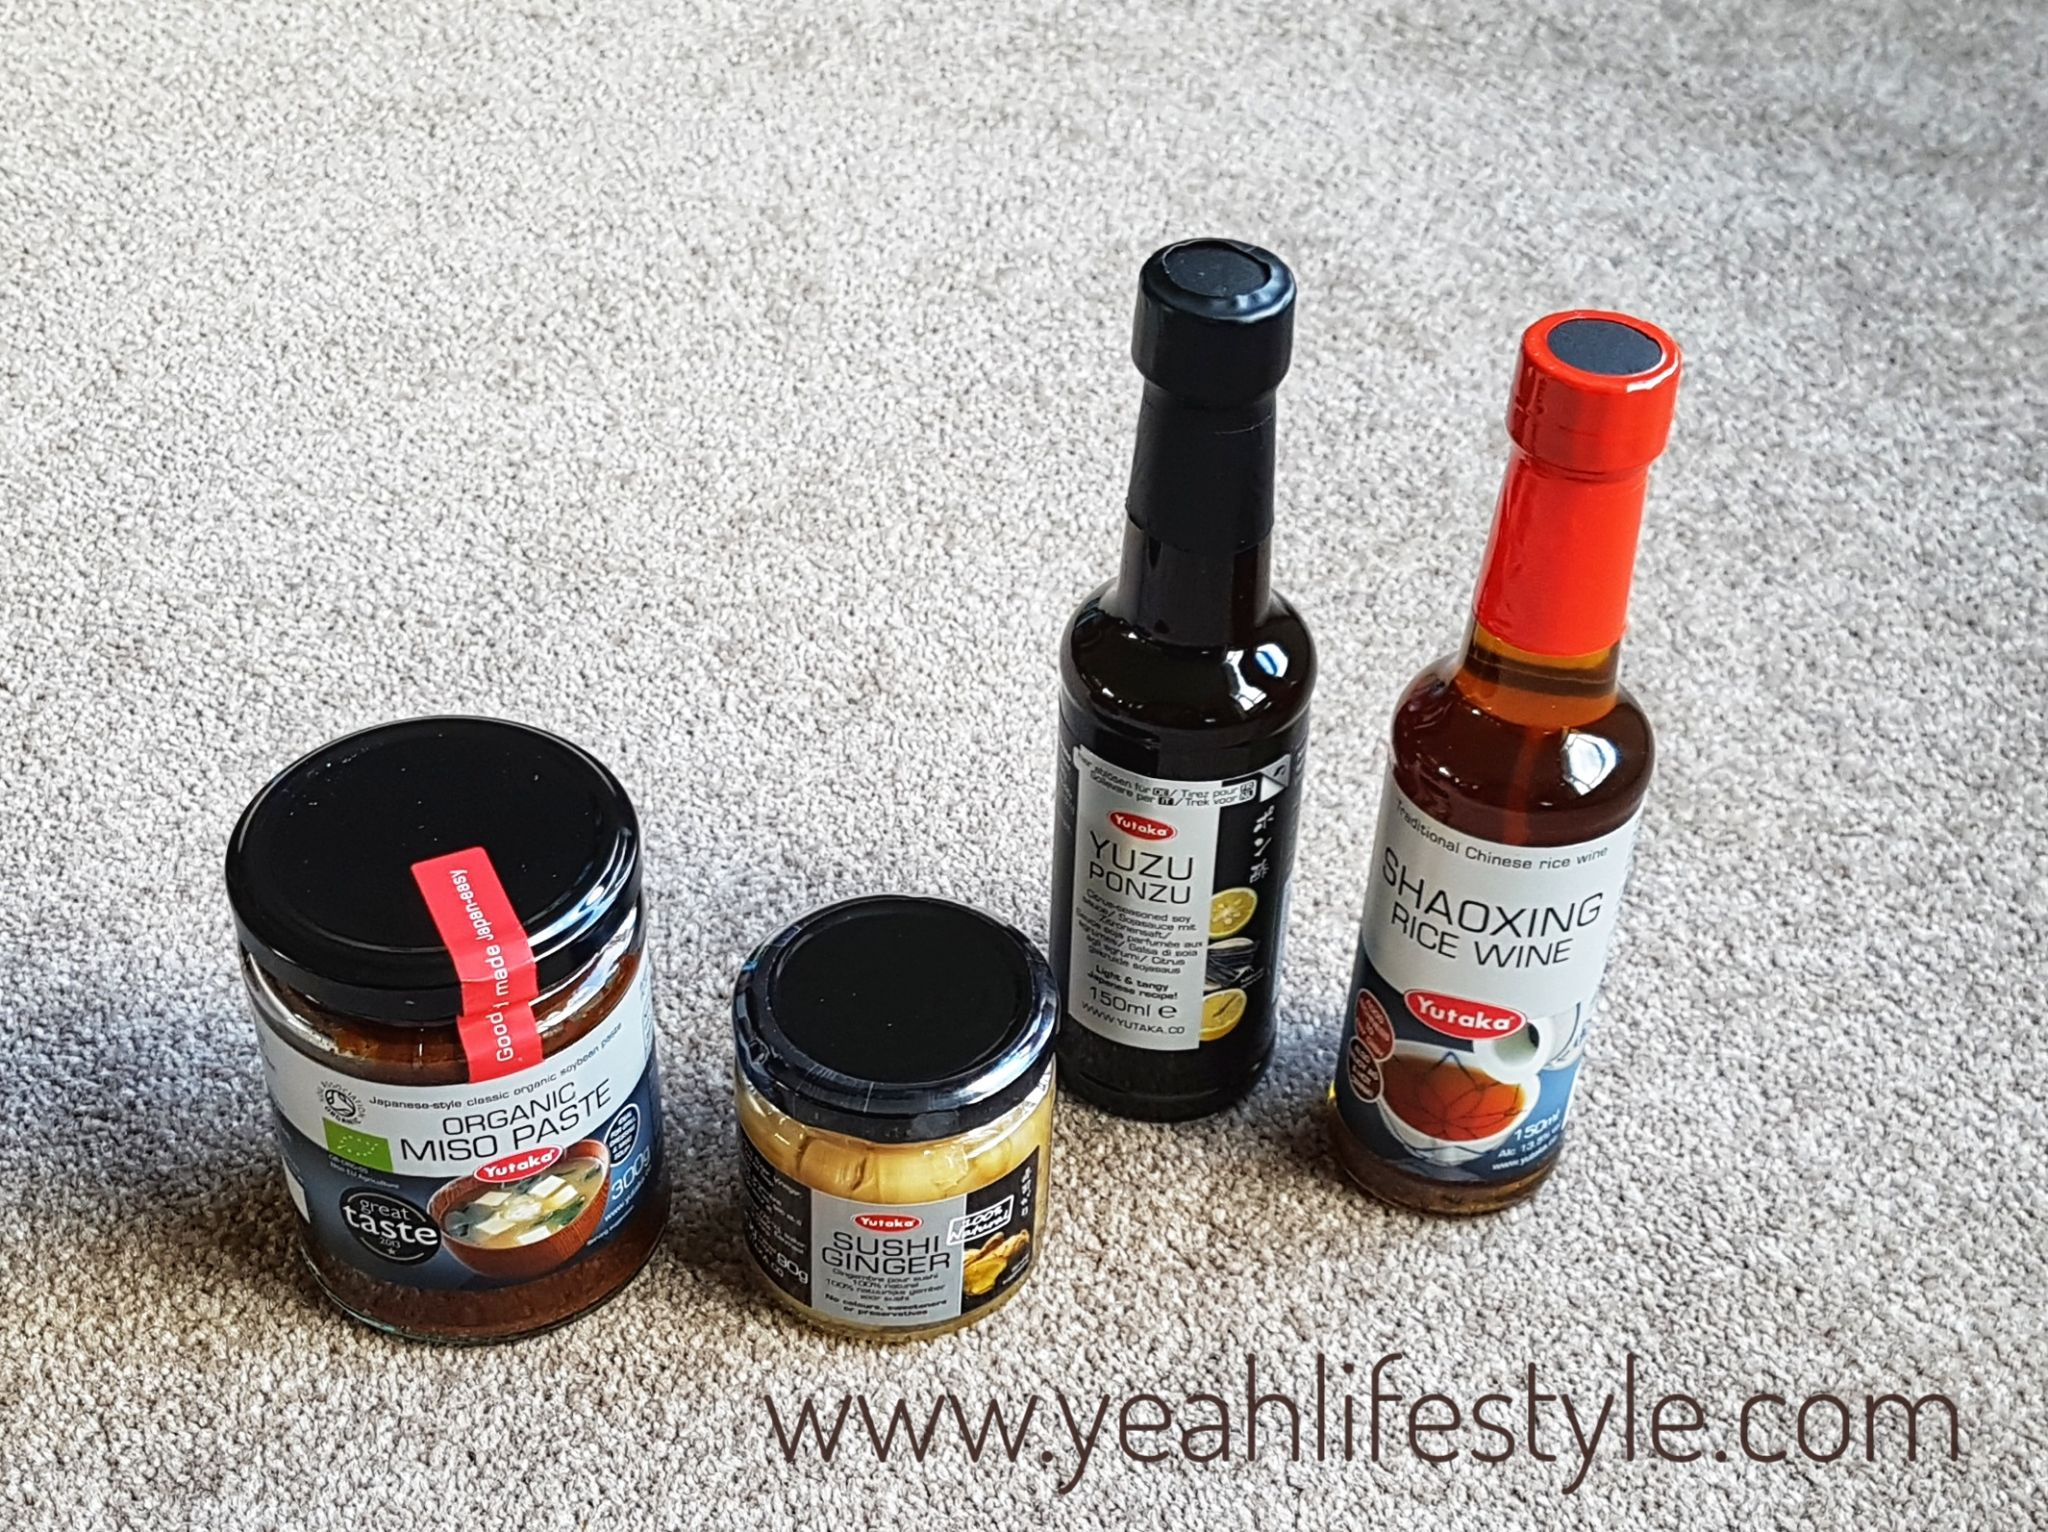 Yutaka japanese products food blogger review recipe uk travel yutaka japanese products food blogger review recipe uk forumfinder Images